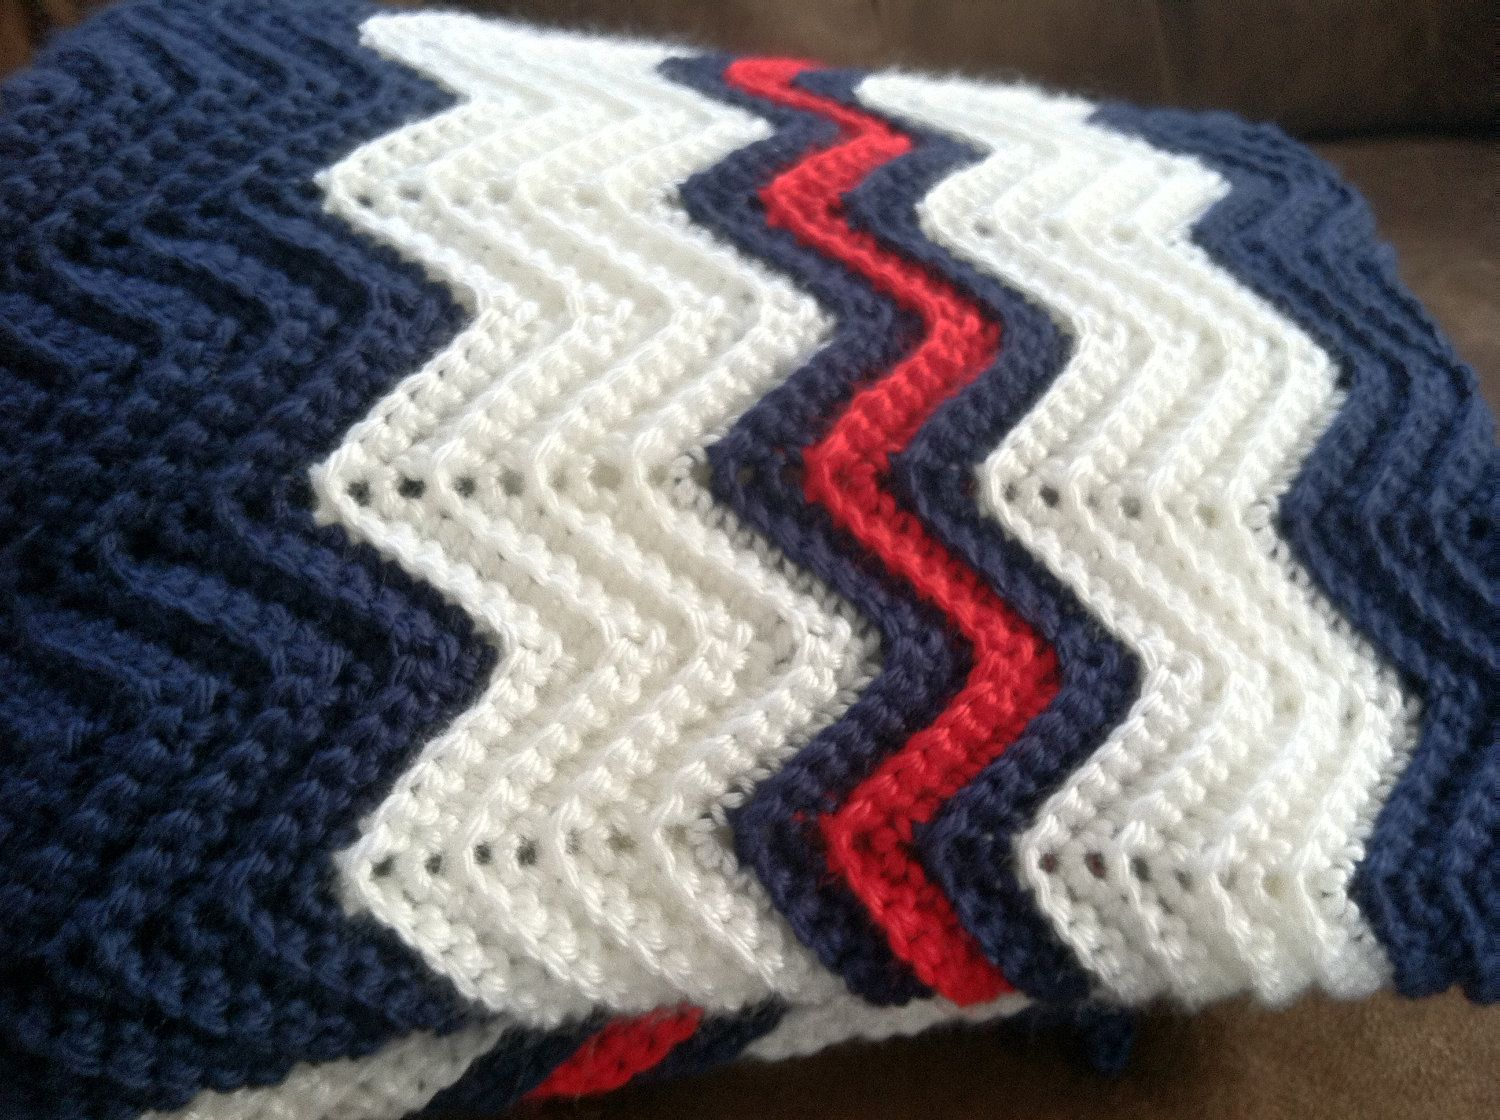 Crochet ripple afghan in navy blue white by kozyafghansbyphyllis crochet ripple afghan in navy blue white by kozyafghansbyphyllis 7500 bankloansurffo Images